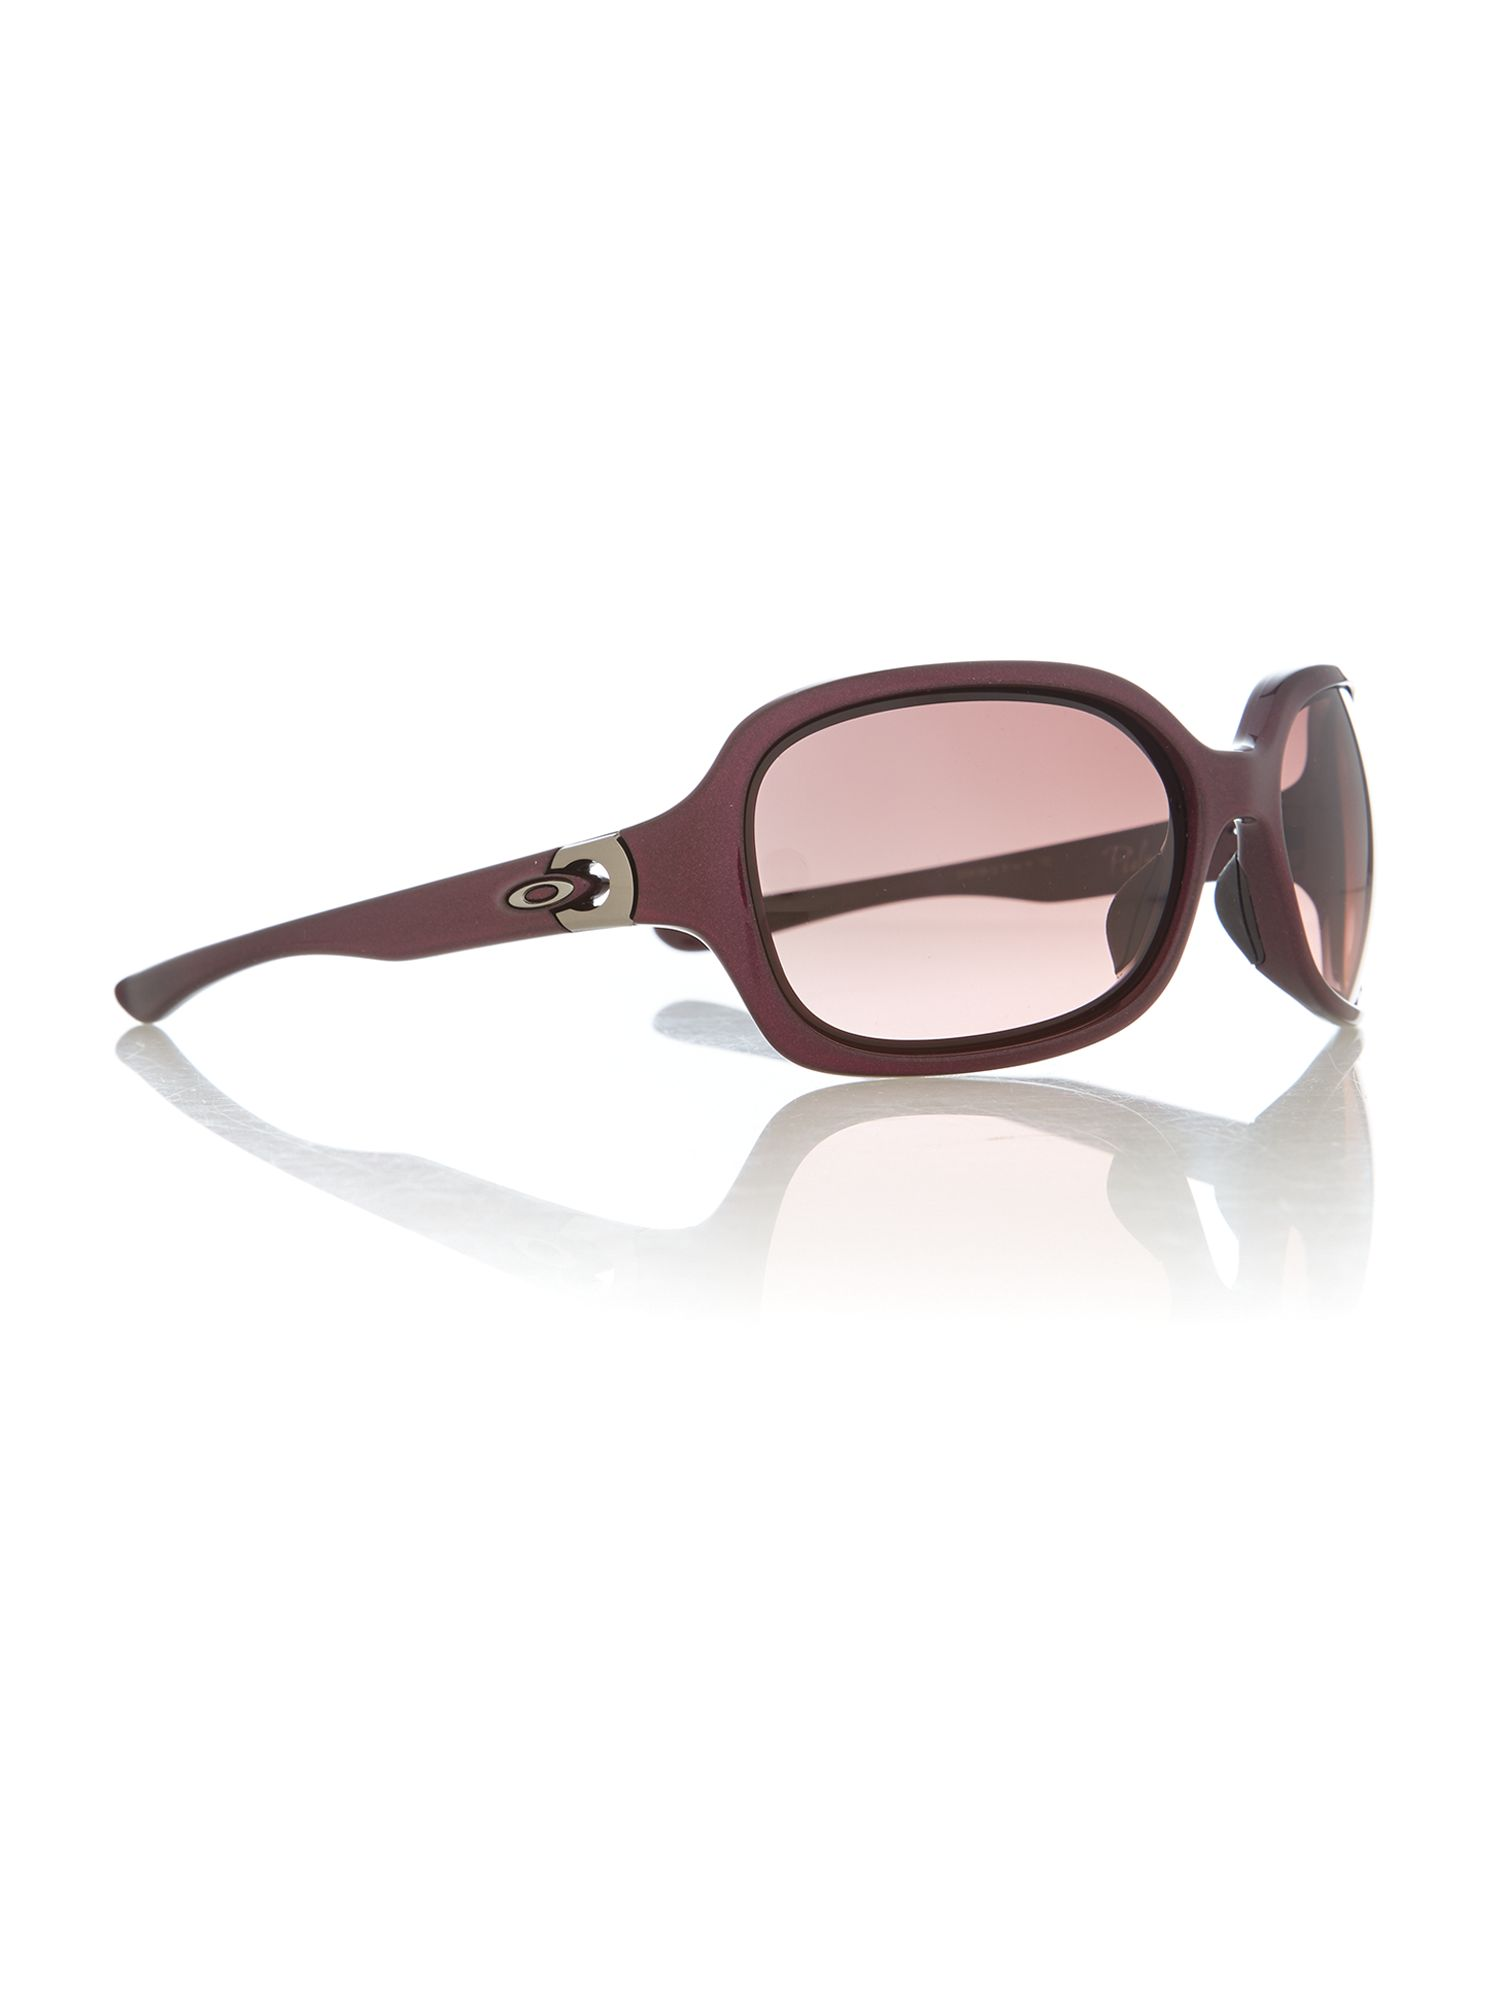 Ladies raspbery spritzer pulse sunglasses